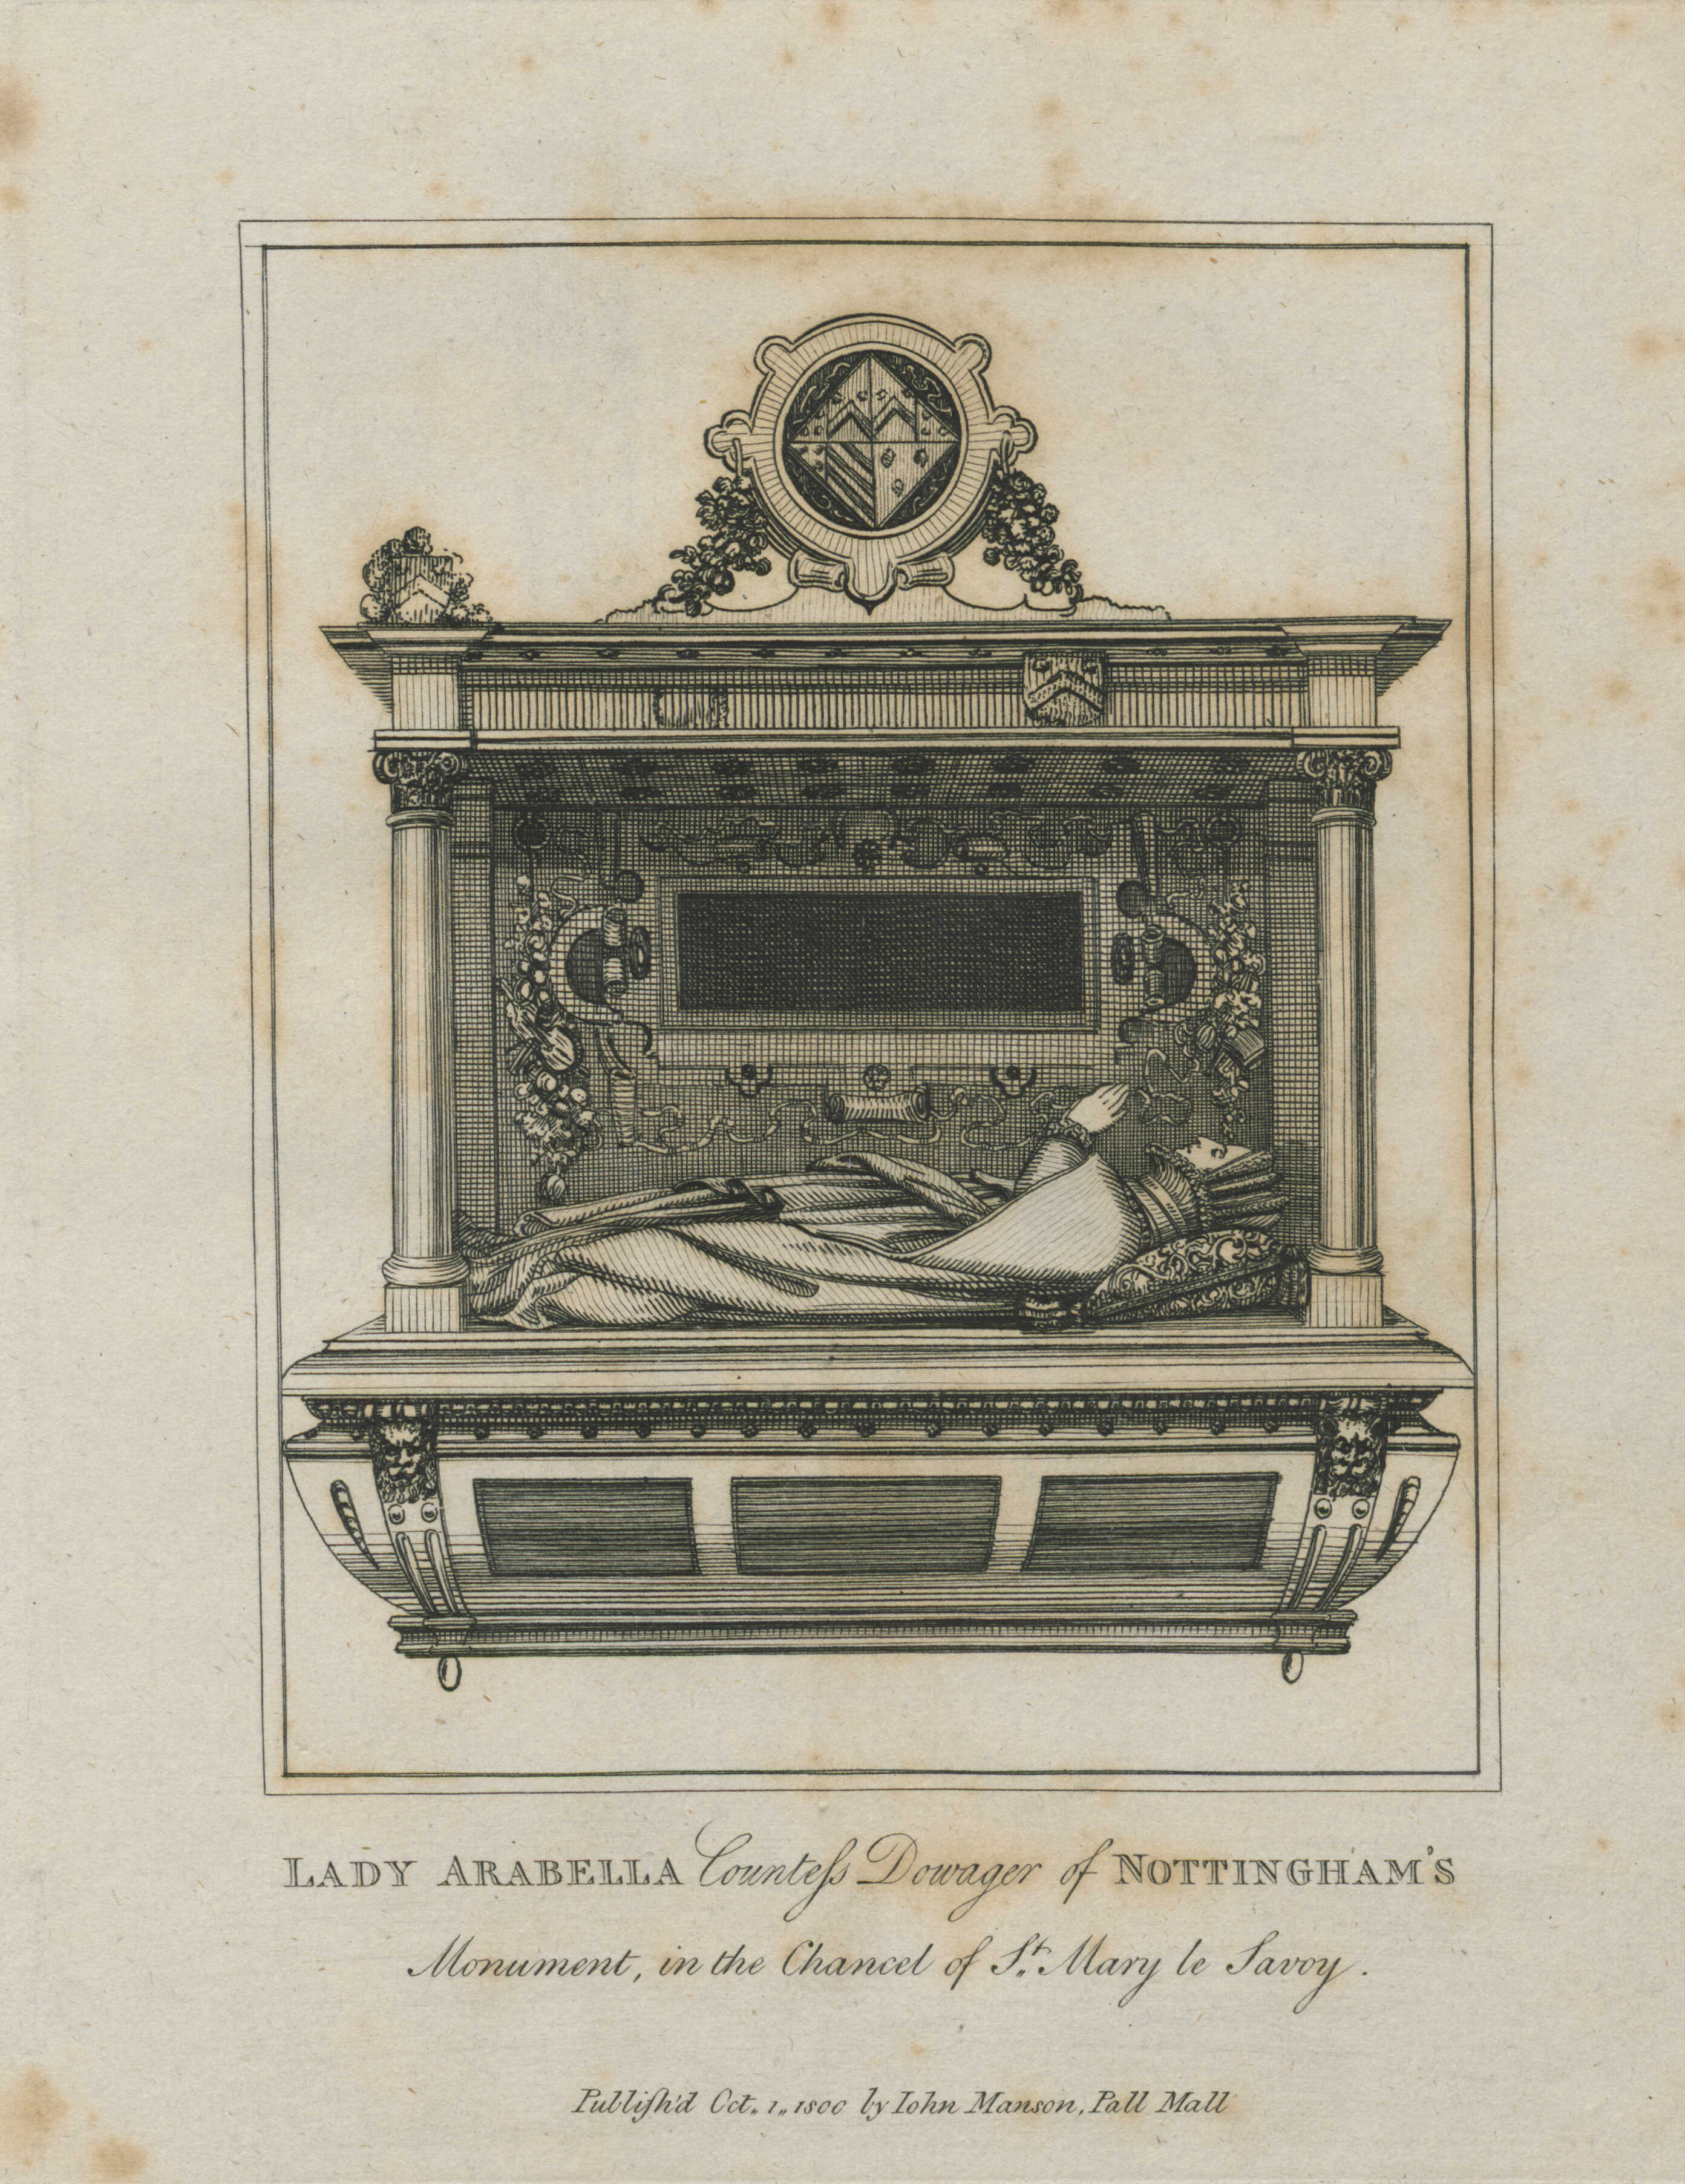 96-lady-arabella-countess-dowager-of-nottinghams-monument-in-the-chancel-of-st-mary-le-savoy